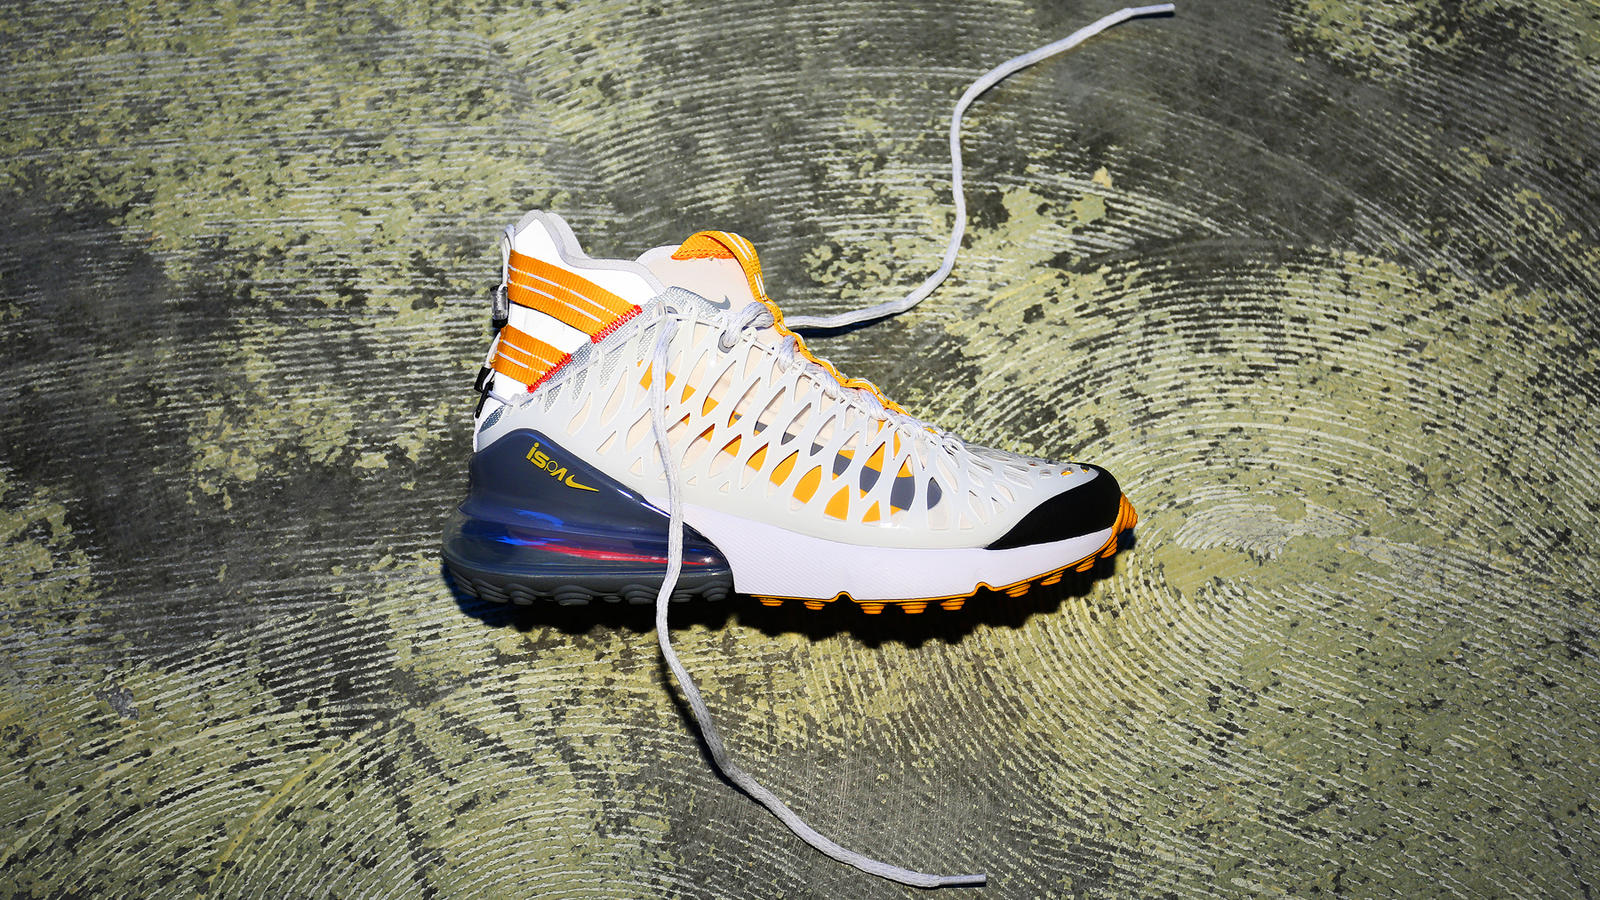 Nike Air Max ISPA 270 SP SOE 2